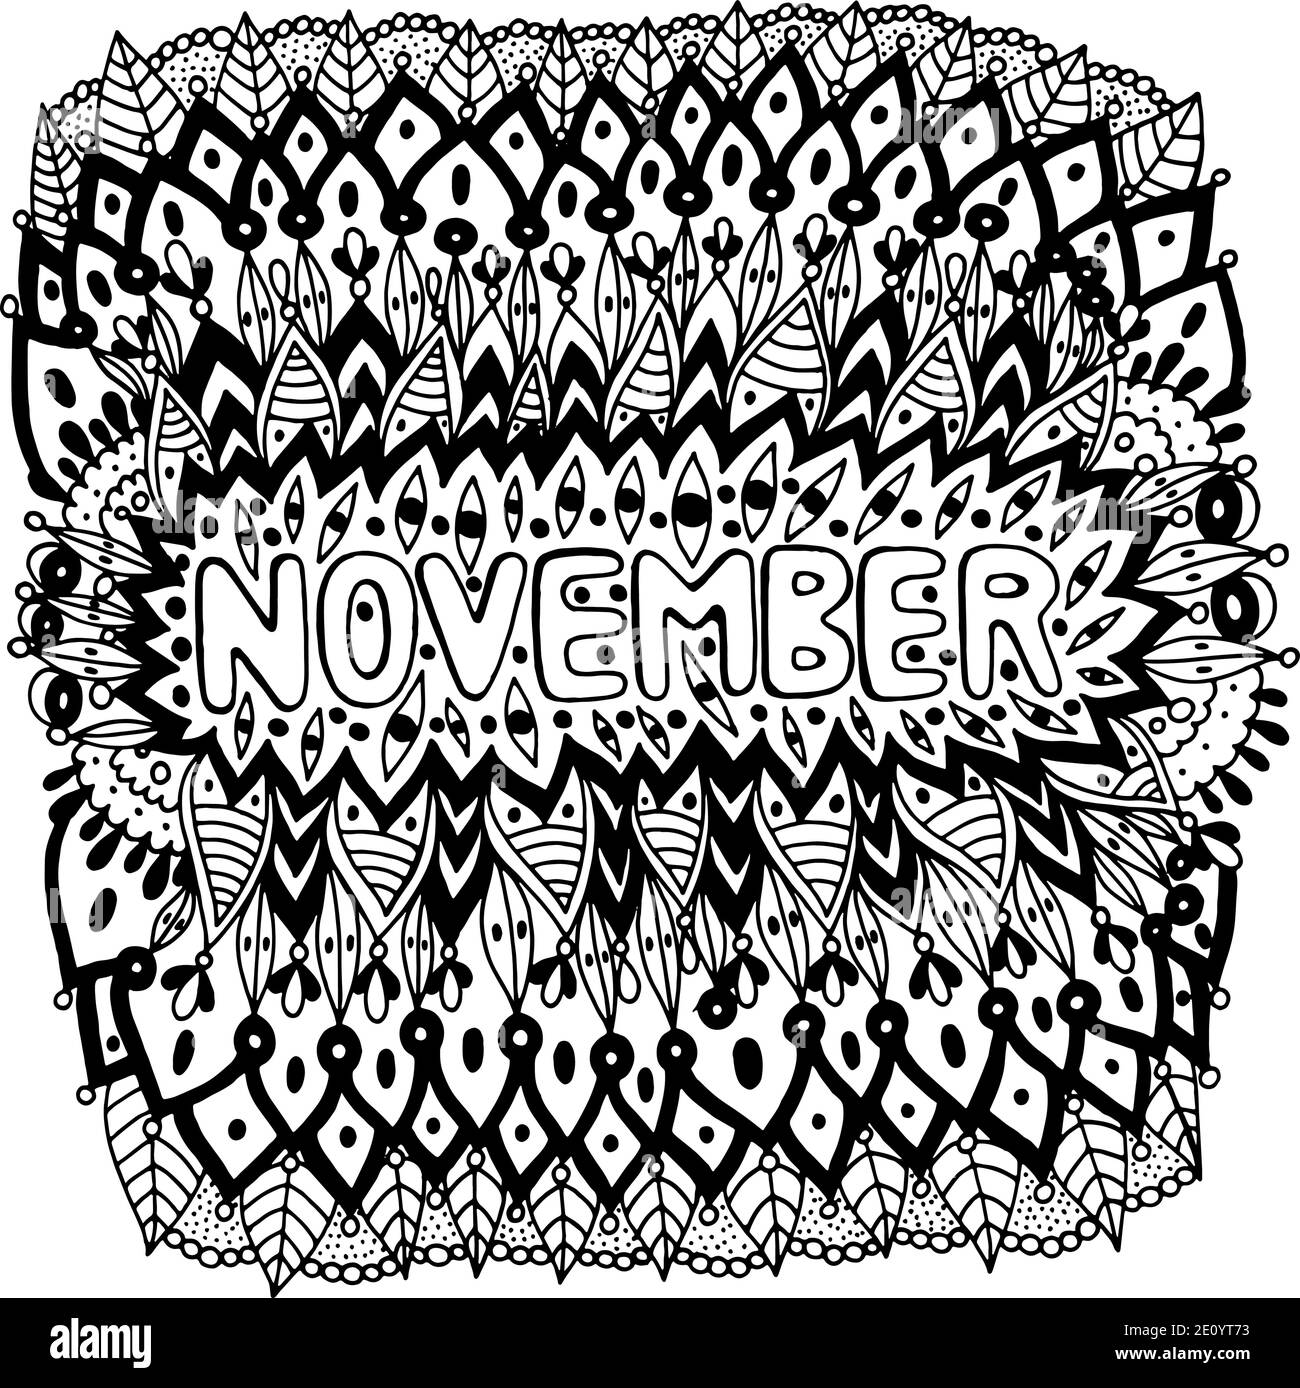 November Coloring Page For Adults Mandala With Months Of The Year Calendar Coloring Book Zentangle Style Art Therapy Coloring Sheet Vector Illus Stock Vector Image Art Alamy